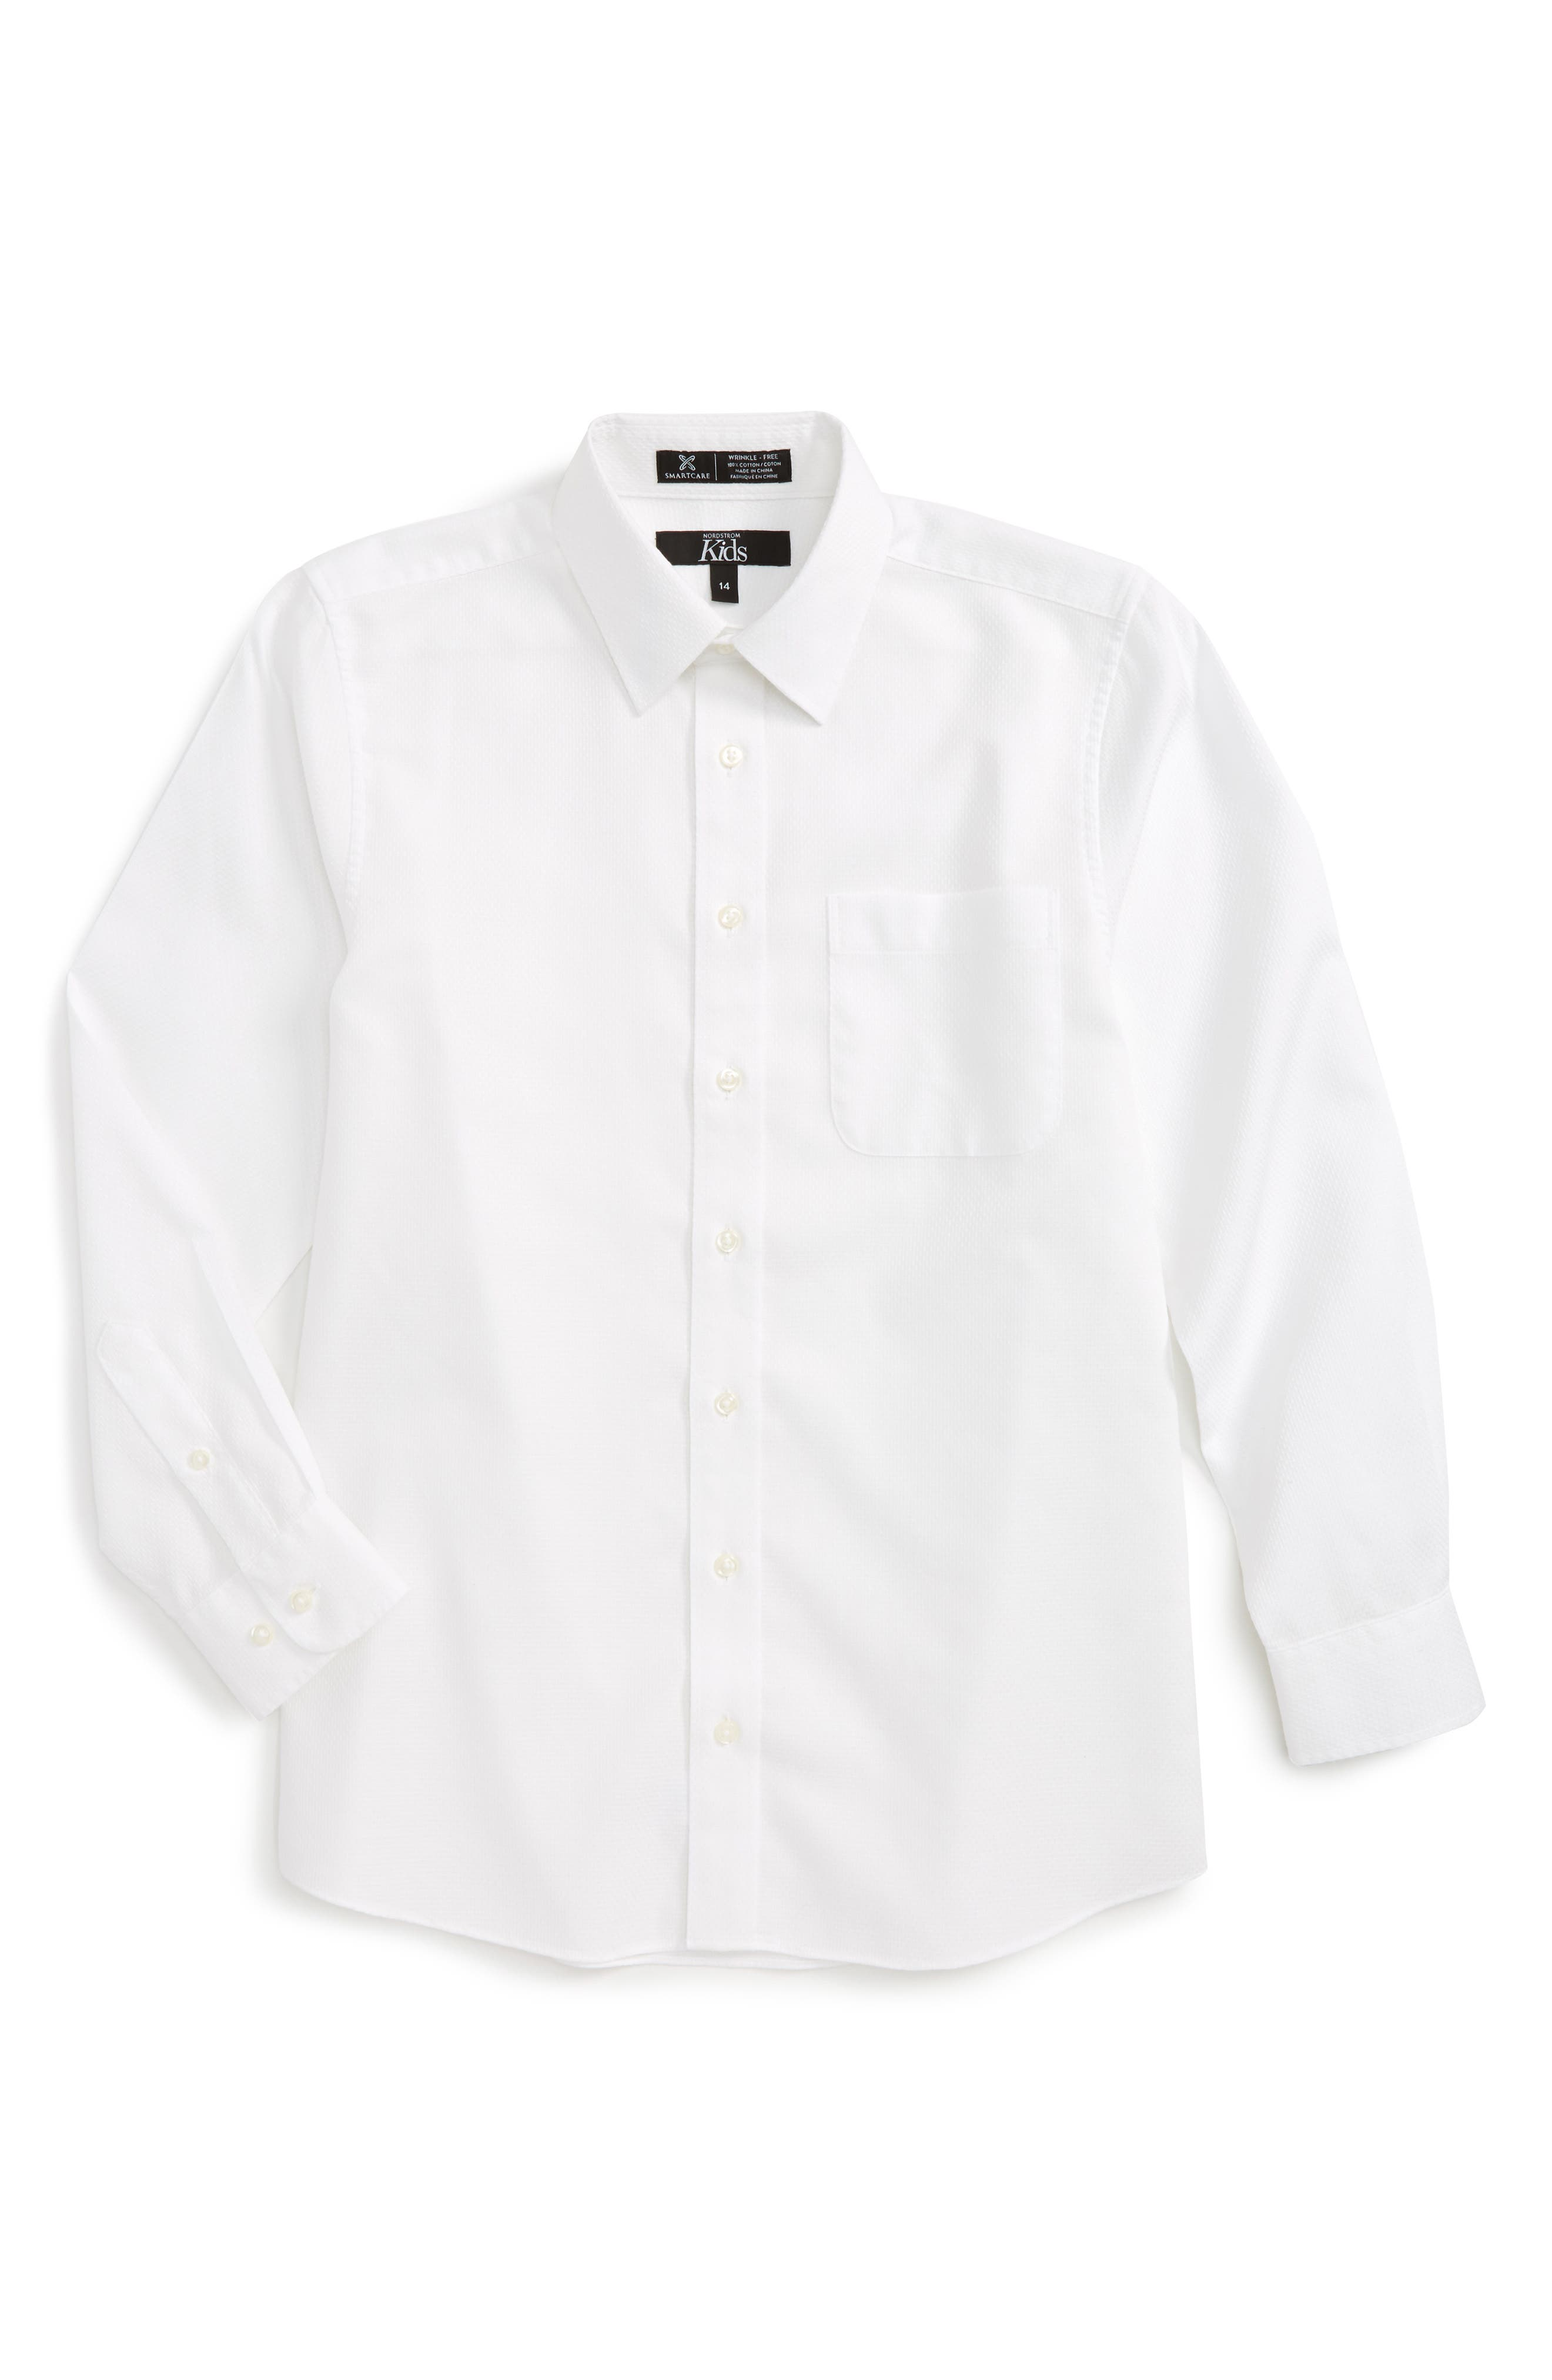 NORDSTROM Smartcare<sup>™</sup> Honeycomb Dress Shirt